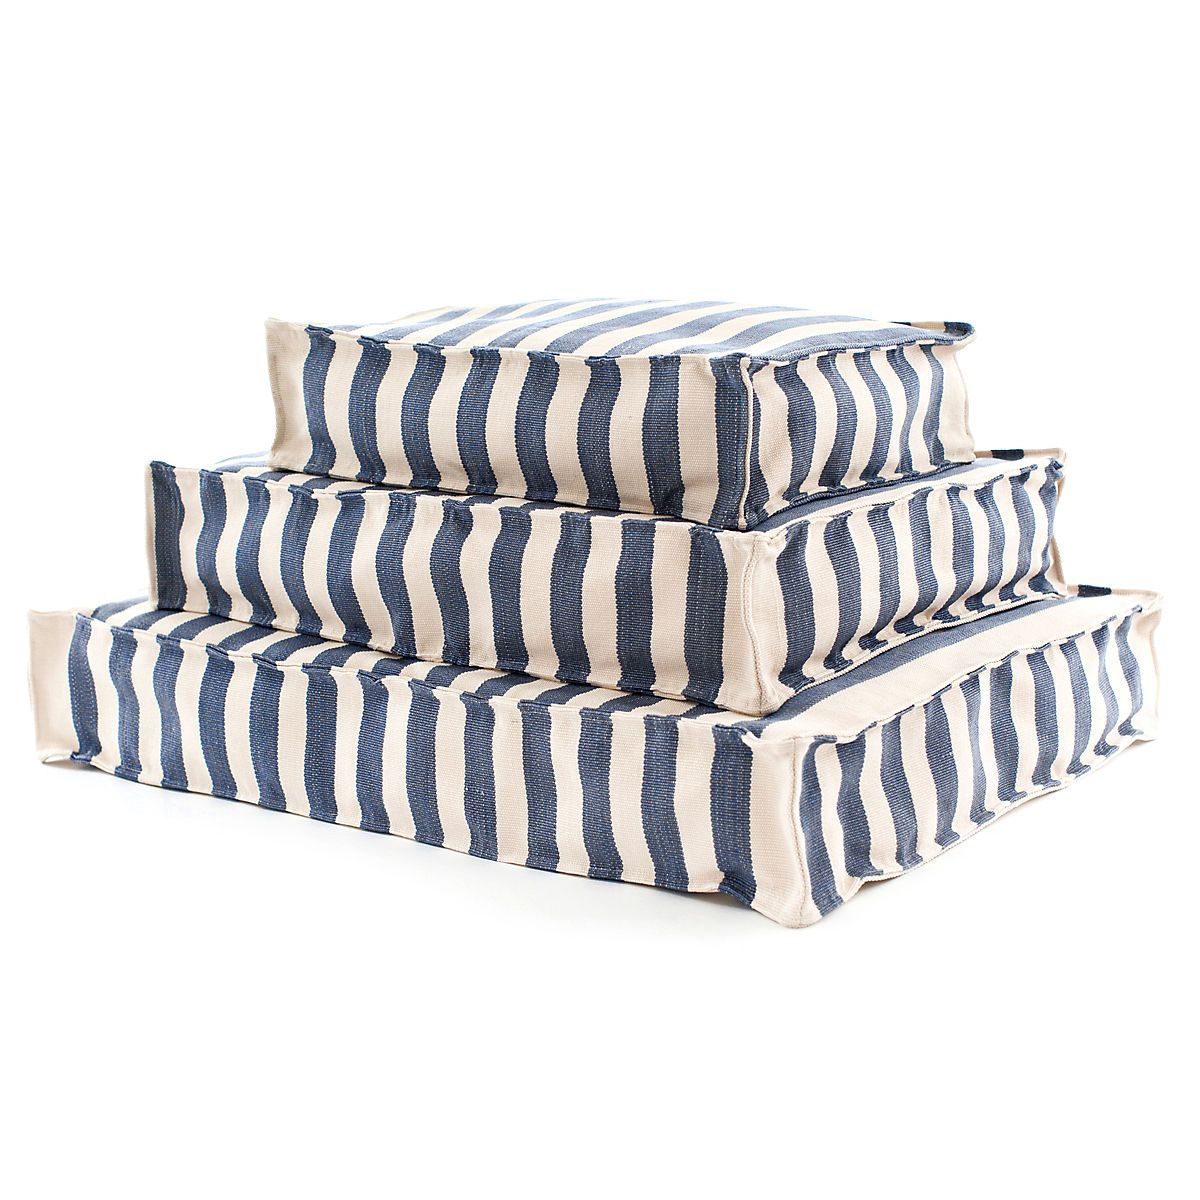 """This navy striped, nautical indoor/outdoor WOUF™ is made of durable, washable polypropylene and filled with polystyrene beads. Its the a perfect addition to the boat or deck, the kids' room, and as a dog or cat bed!   • 100% polypropylene shell; filled with polystyrene beads.  • 30""""x 40""""x 6"""", 24""""x 32""""x 6"""", and 18""""x 24""""x 6""""."""